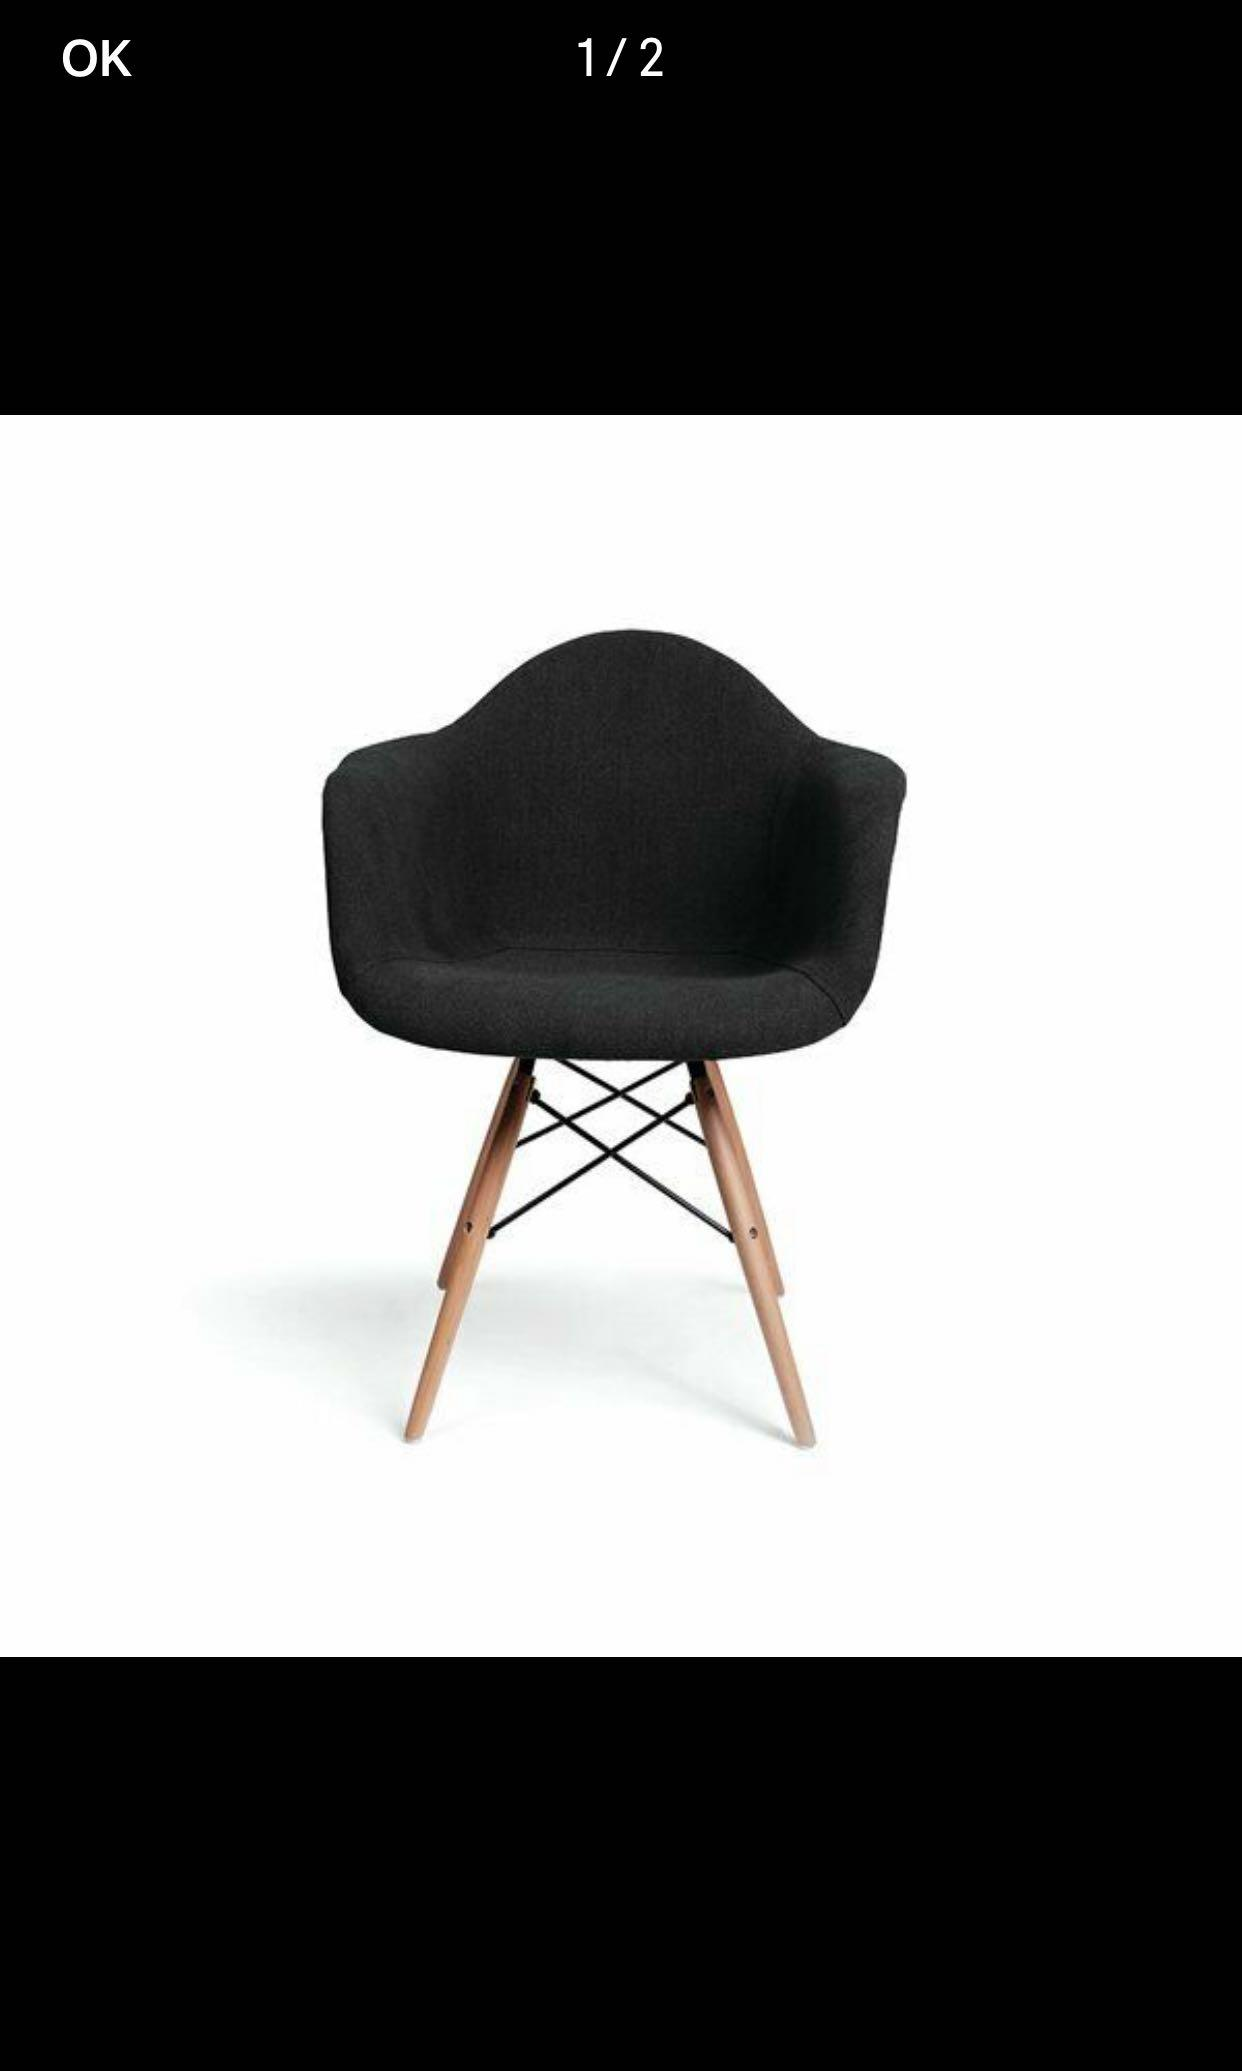 Wolff chair - less than a year - bought on Wayfair - need it gone before April 18